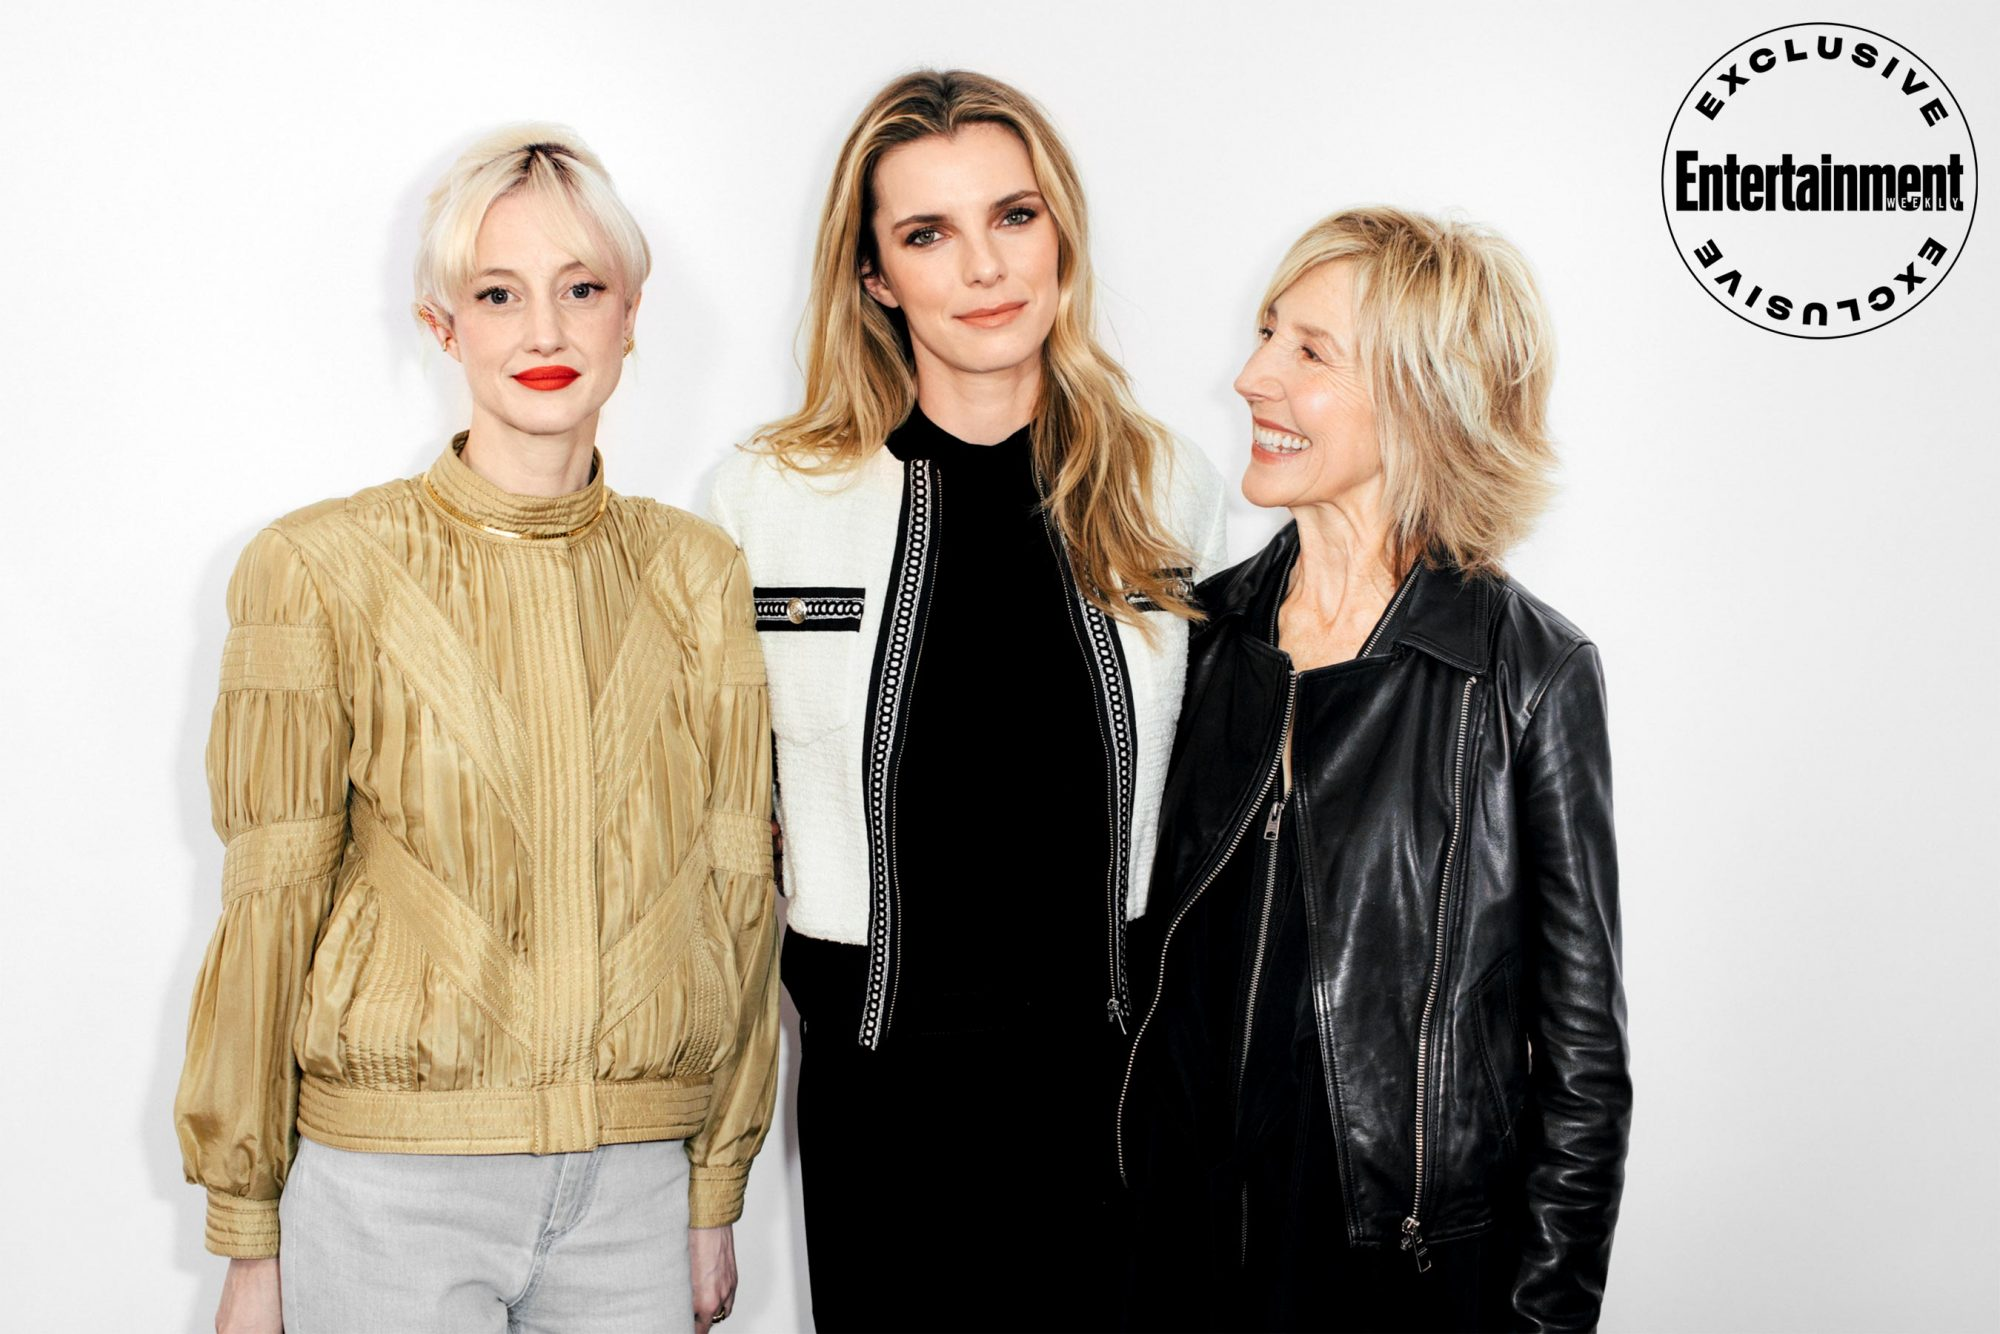 Andrea Riseborough, Betty Gilpin, and Lin Shaye from The Grudge